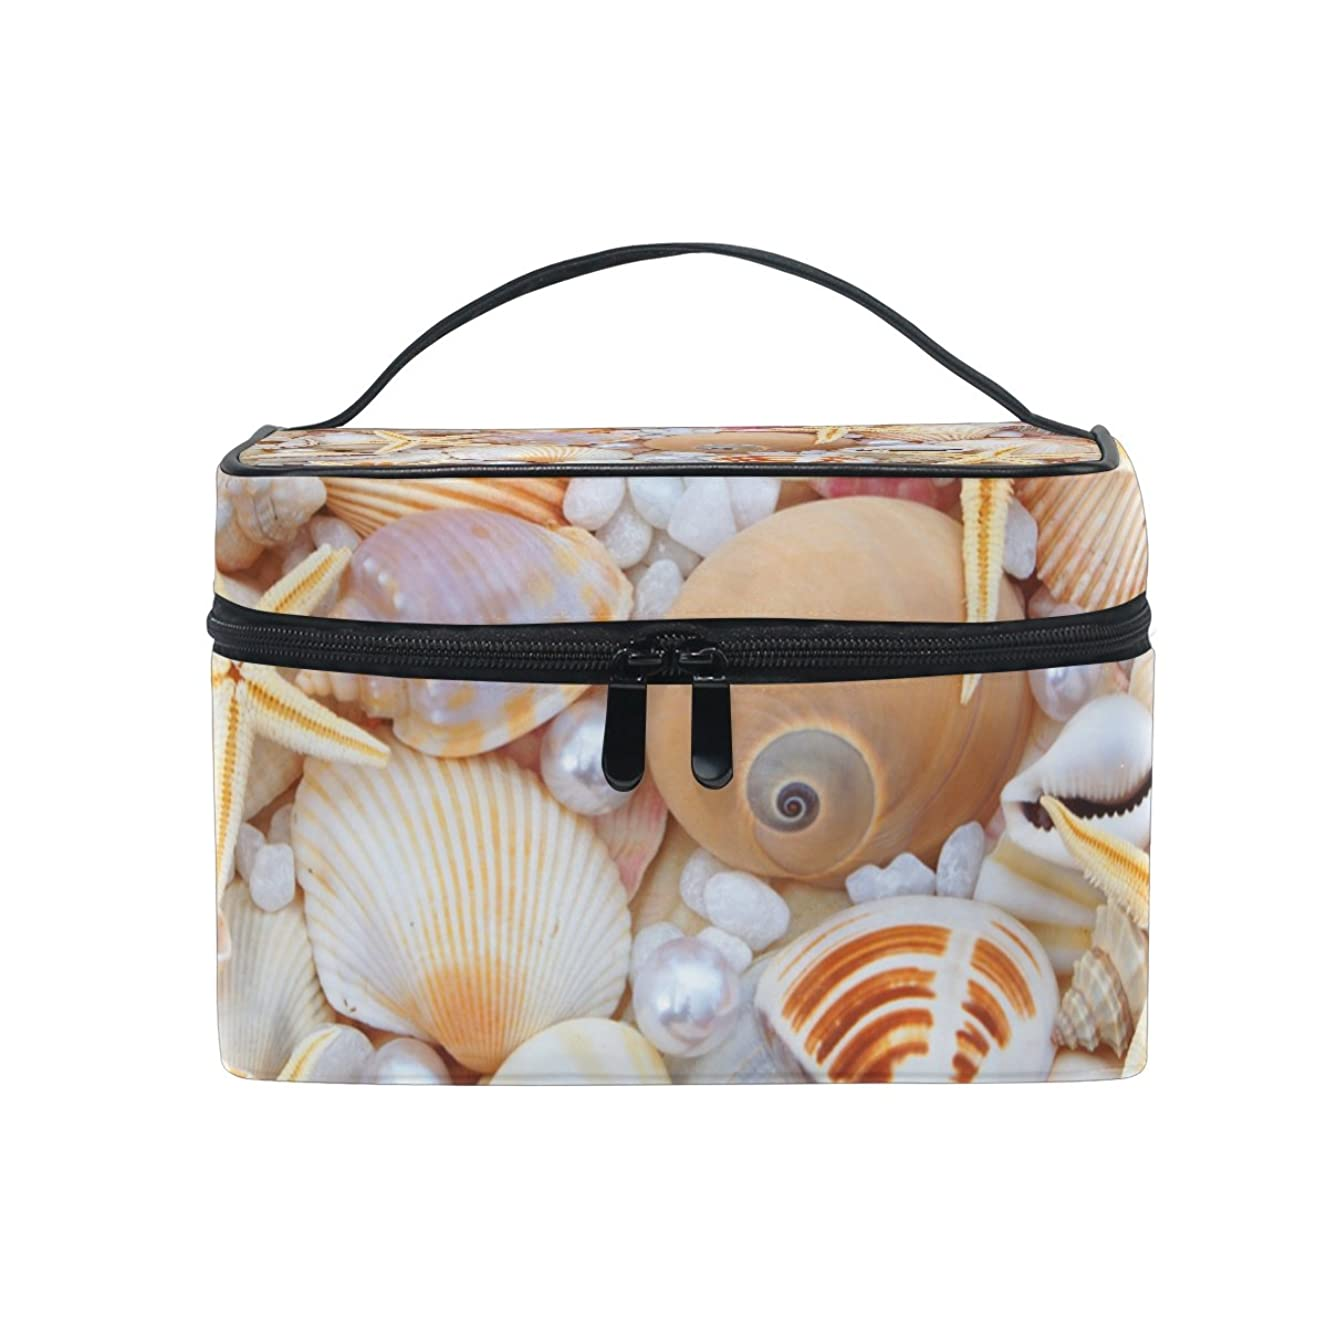 KUWT Starfish Seashell and Pearl Women Travel Cosmetic Bag Portable Makeup Train Case Toiletry Bag Beauty Organizer